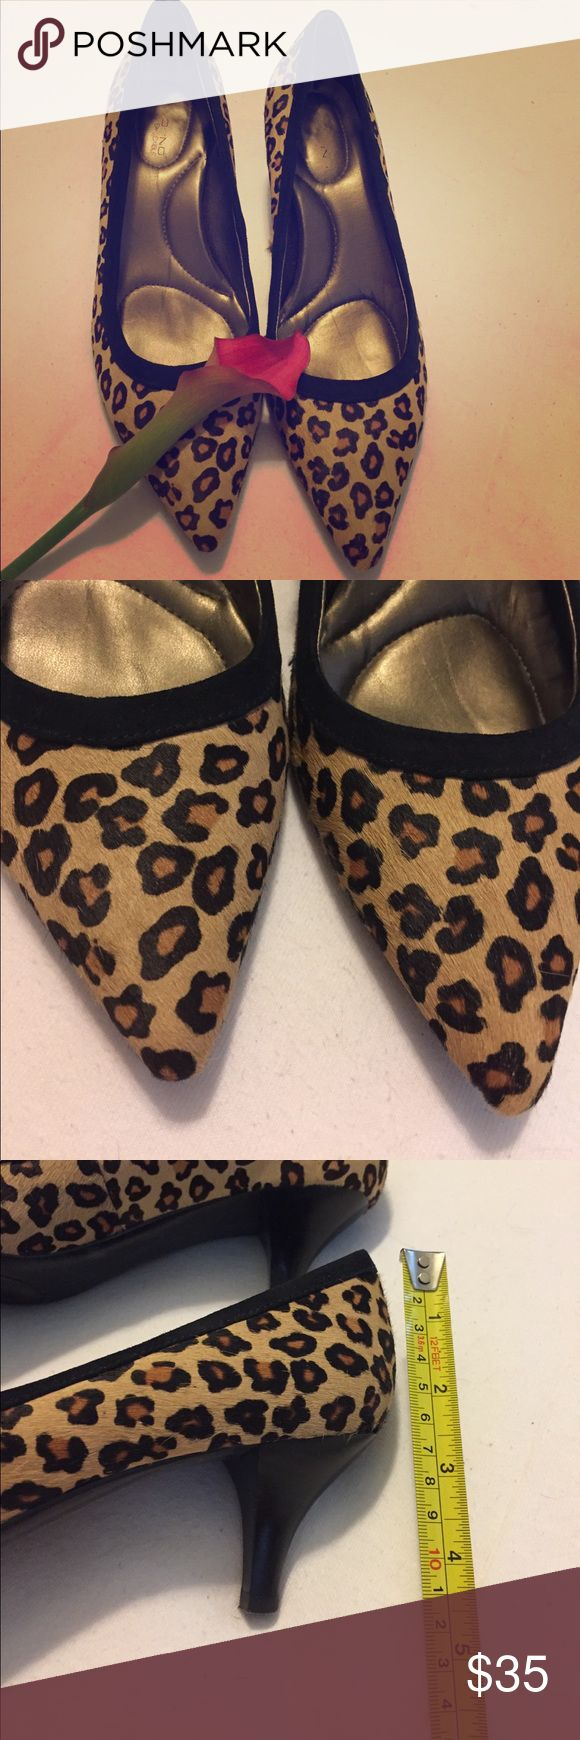 Calf hair leopard print pumps Super comfortable and extremely classic style!  Calf hair (not sure if real or not) with a traditional leopard print pattern trimmed in black suede.  Very gently worn and in beautiful condition.  Extra padding in insoles give the comfort on top of style. Bandolino Shoes Heels